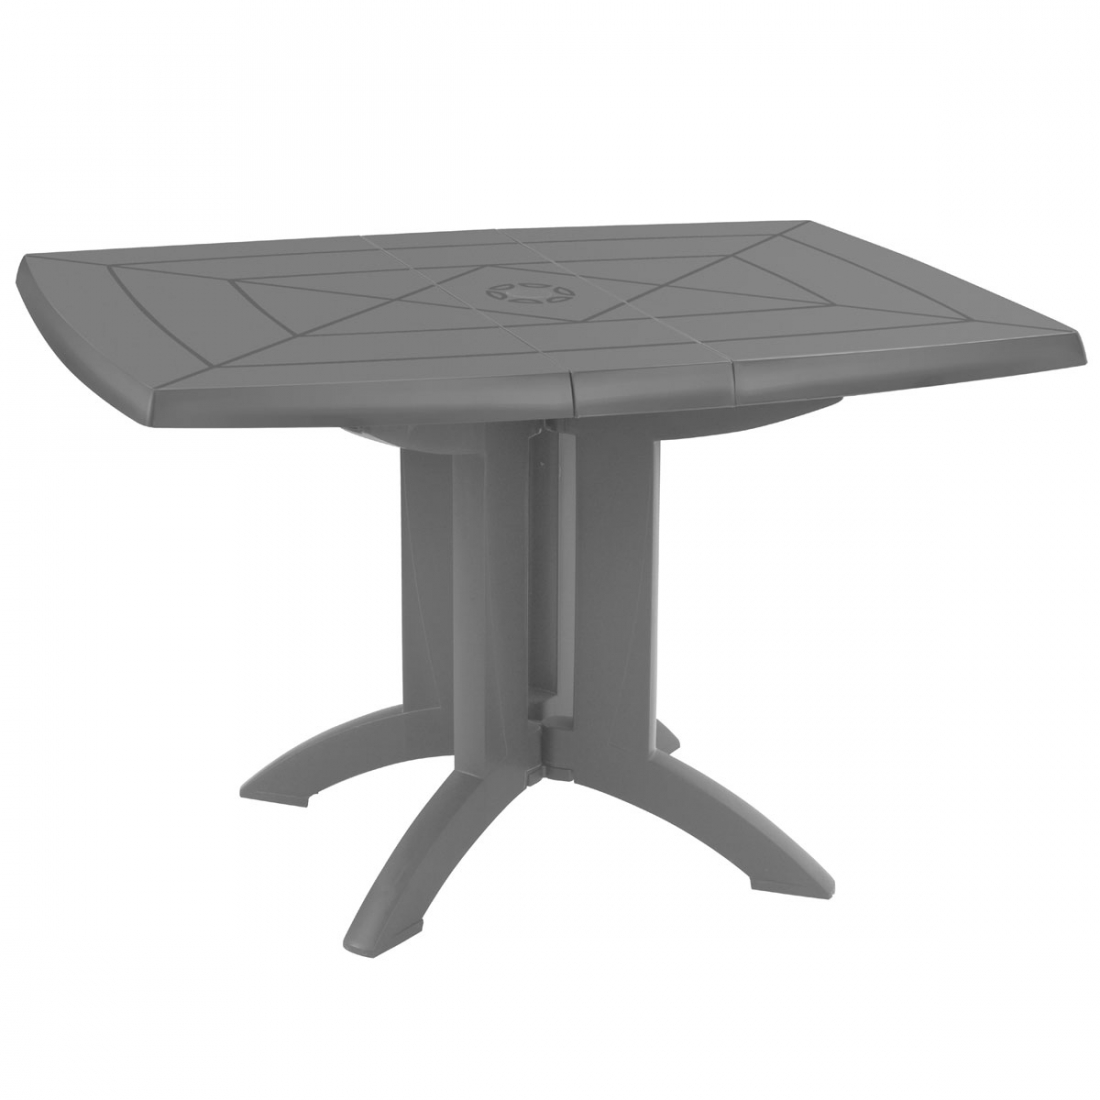 Table de jardin pliante vega grosfillex - Table de jardin octogonale ...